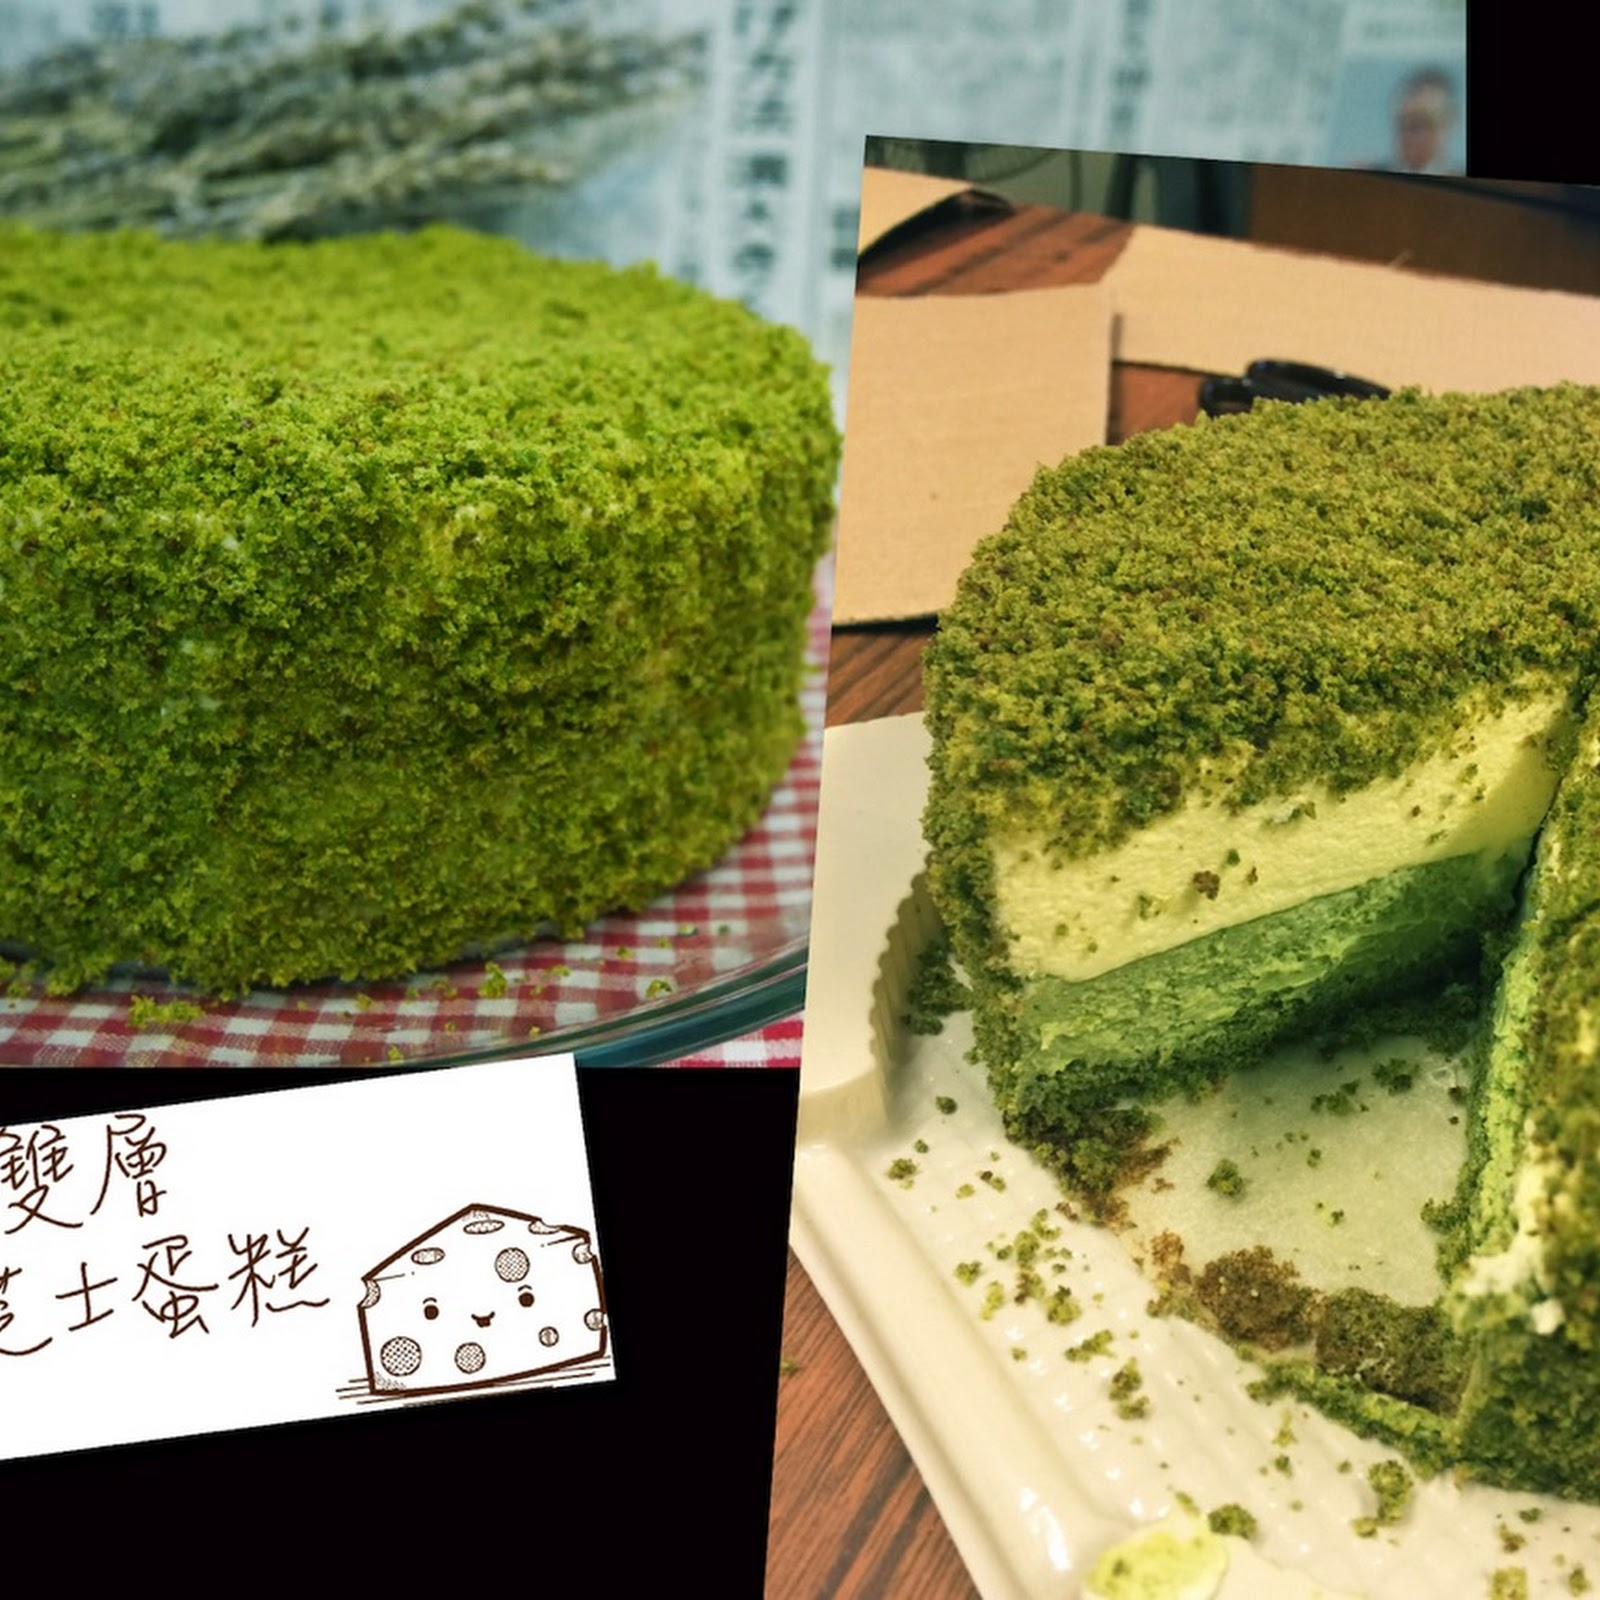 抹茶雙層芝士蛋糕 <LeTao> Double Macha Cheesecake【老娘的草根飯堂OldLady's Kitchen】